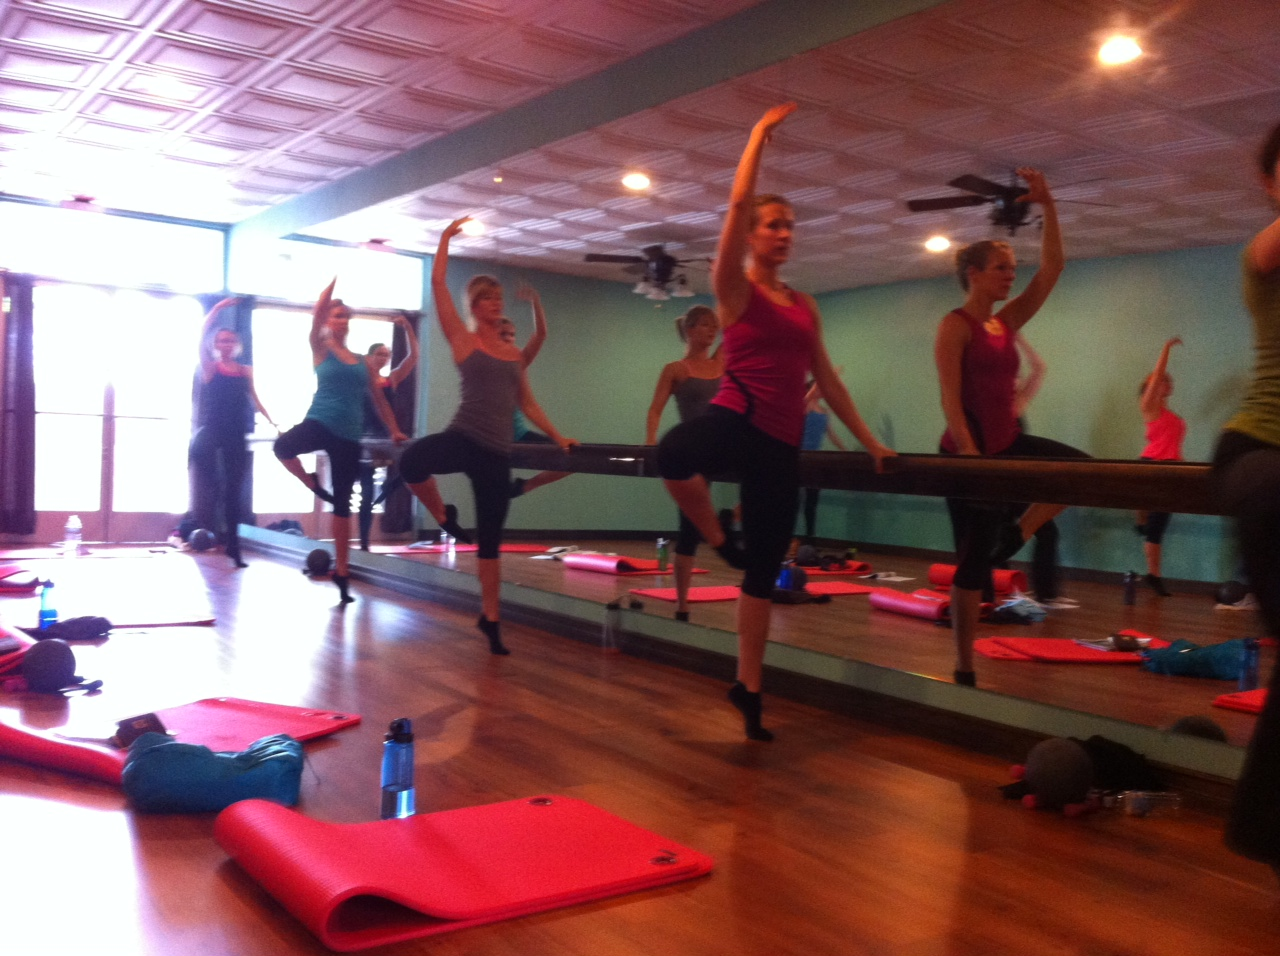 Xtend barre instructor training shaped for fitness exercise xflitez Gallery